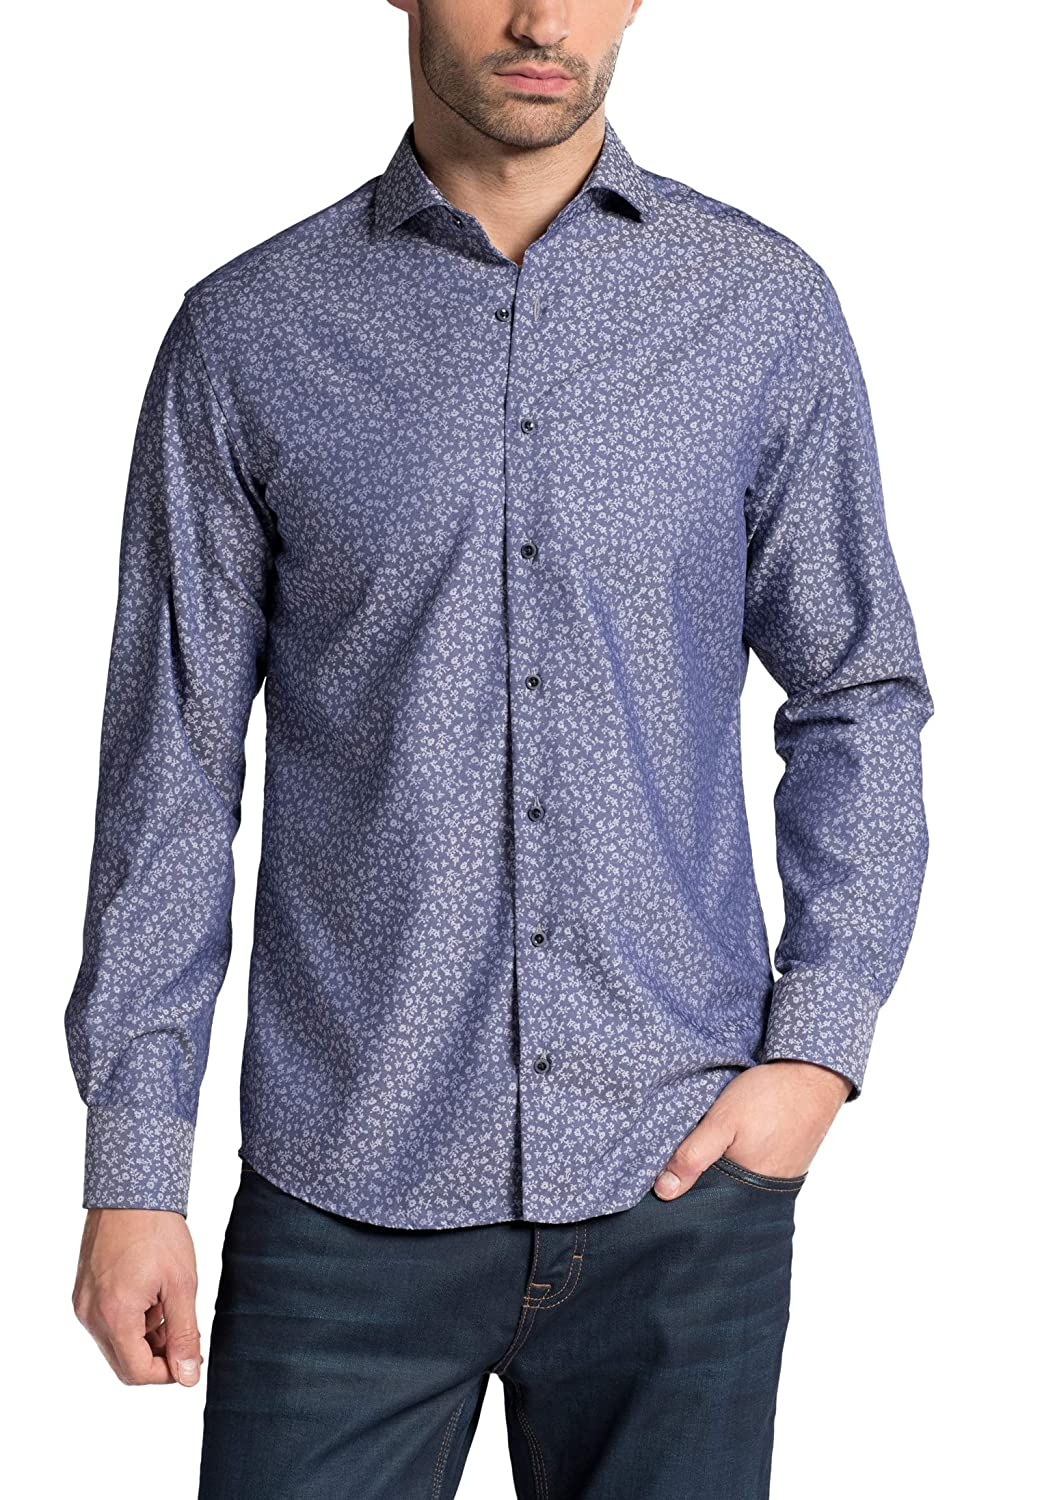 TALLA W42, Longitud manga larga. Eterna Long Sleeve Shirt Modern FIT Jacquard Patterned